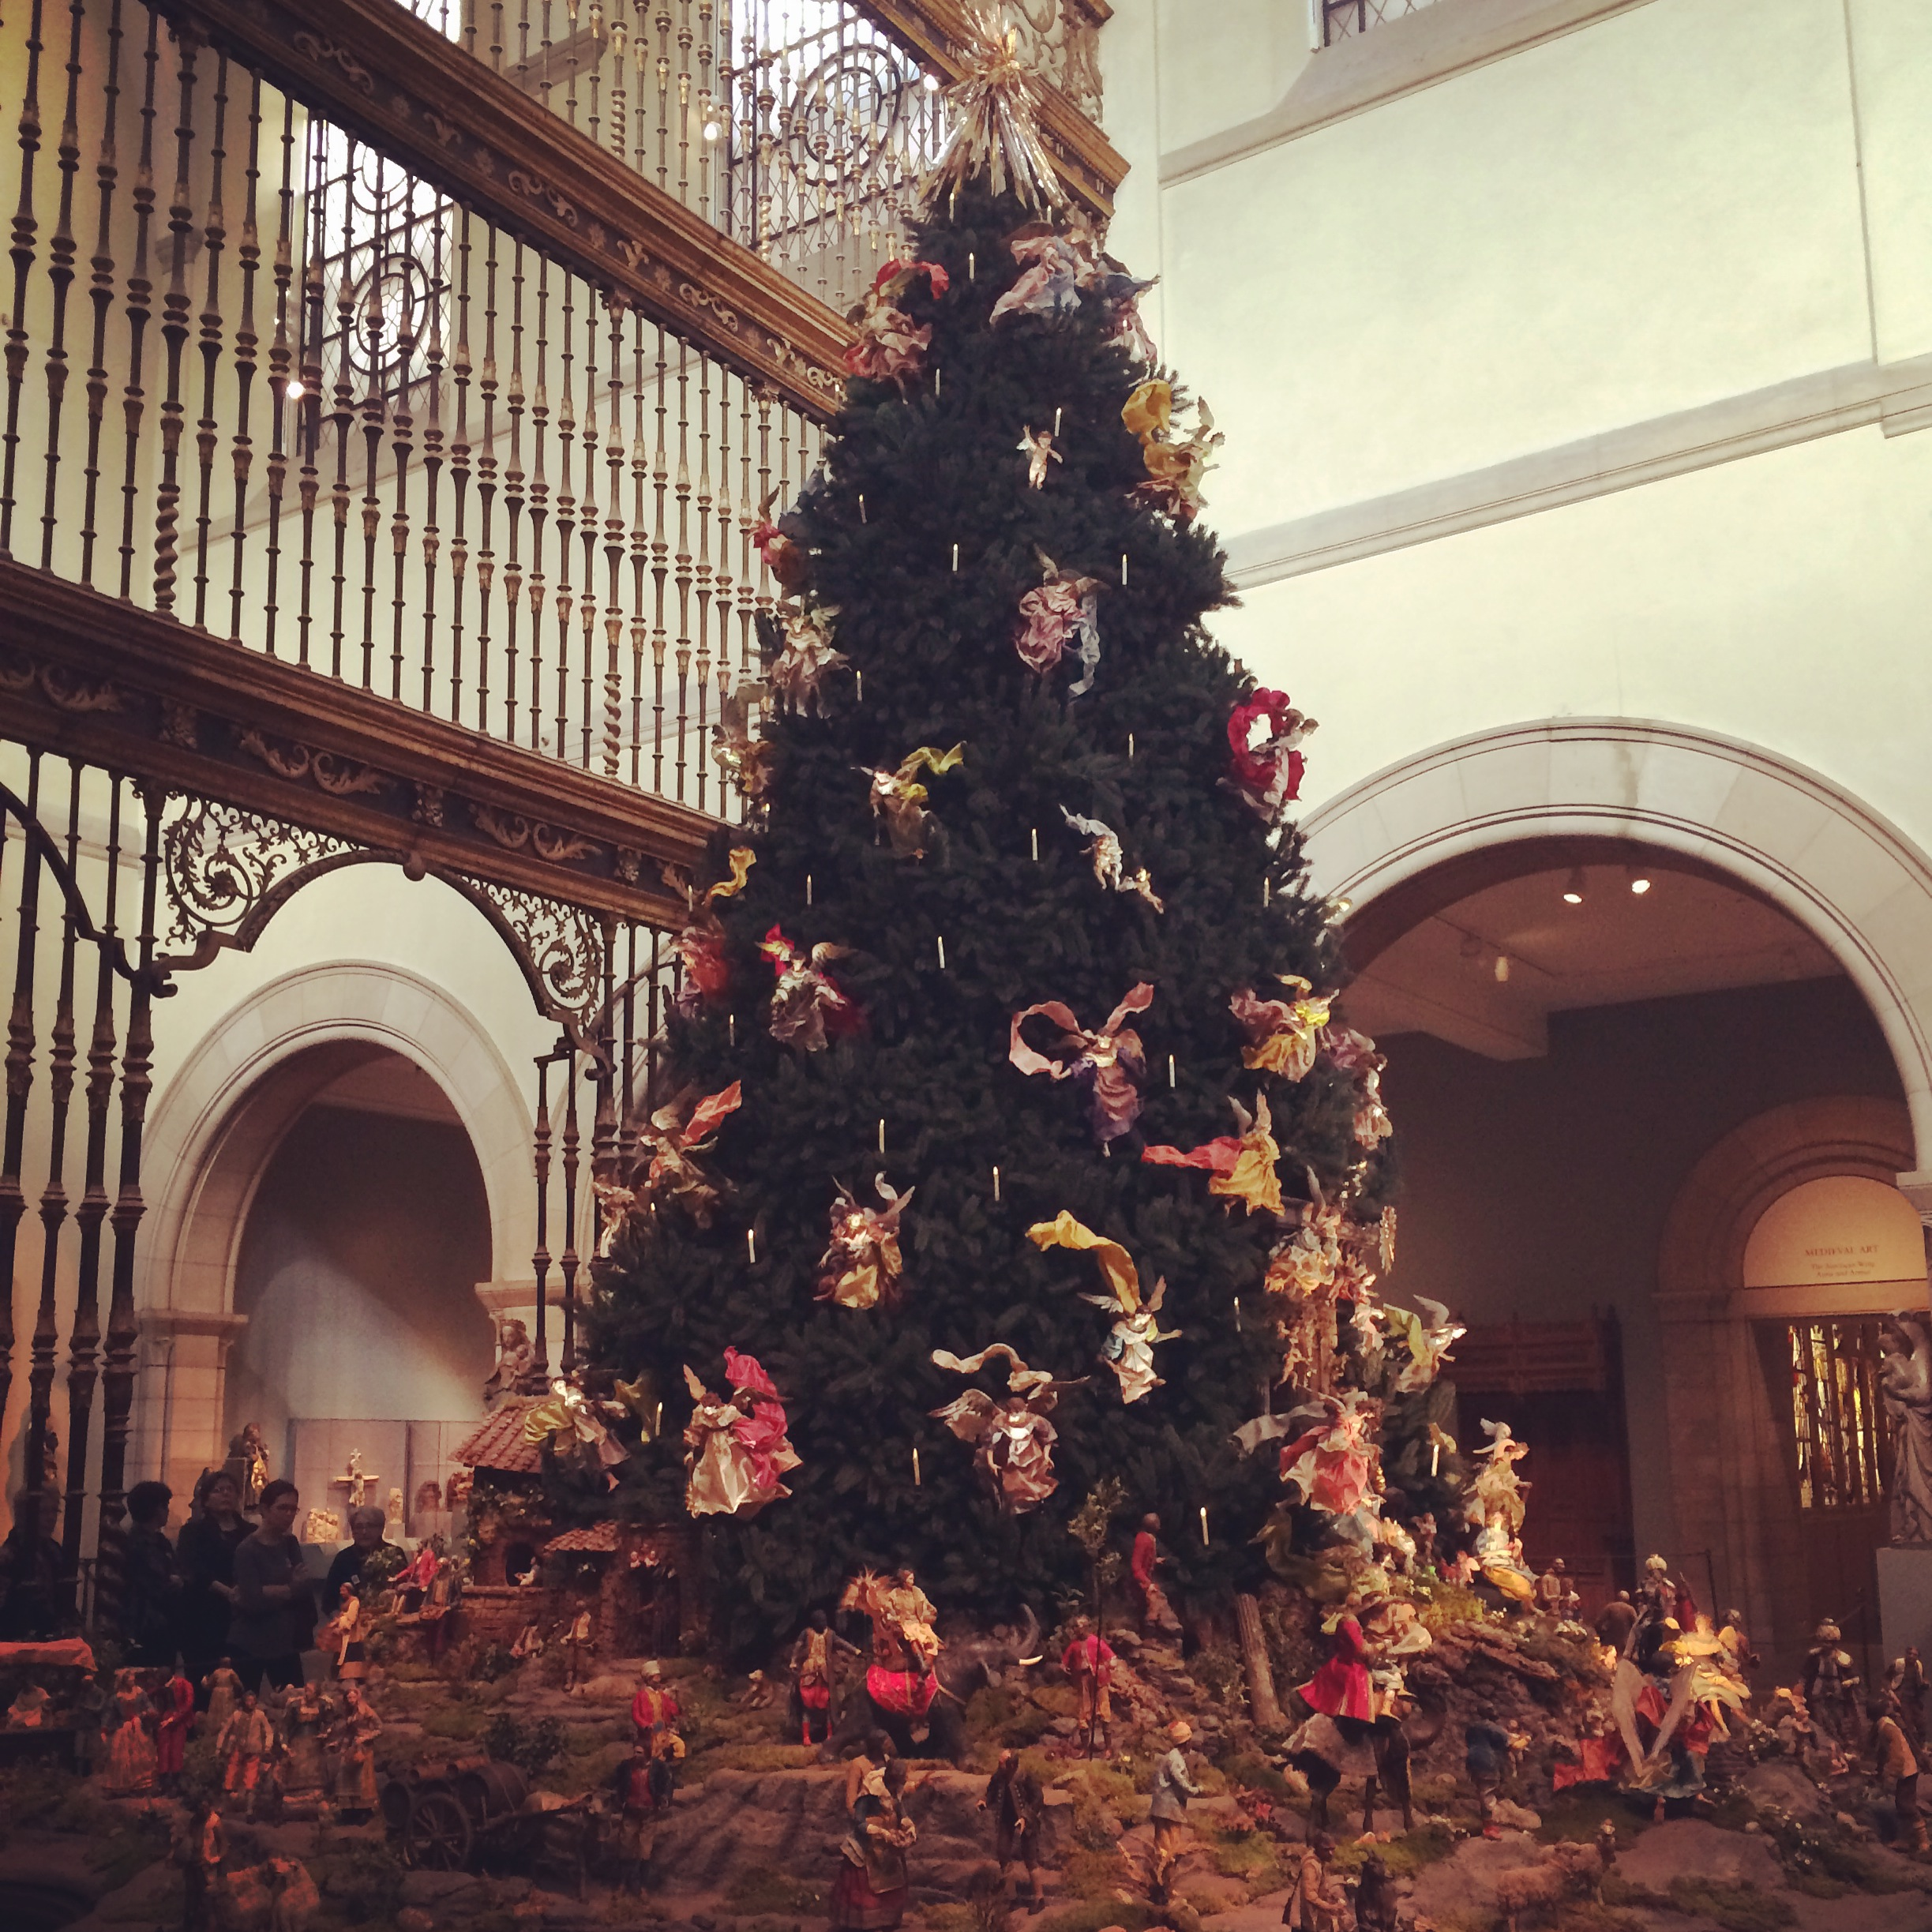 Trees of New York: Christmas Holiday 2015 | Oh, the Places We See . . .